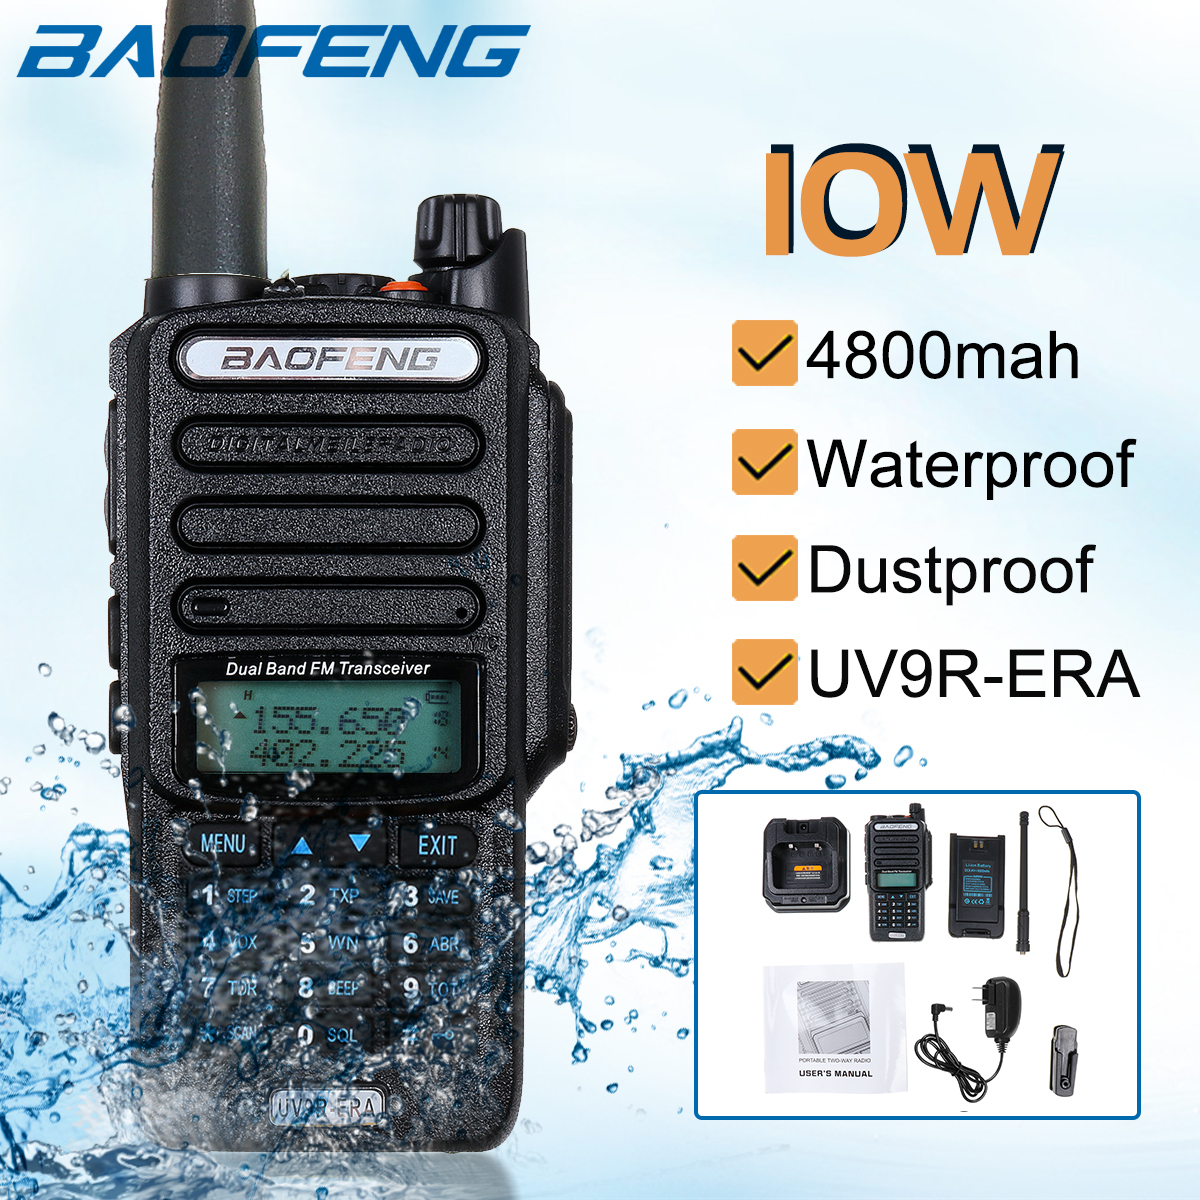 Baofeng UV9R-ERA Walkie Talkie Professional Radio Station Transceiver VHF UHF Portable Radio 15km Talk-Range 4800mah image